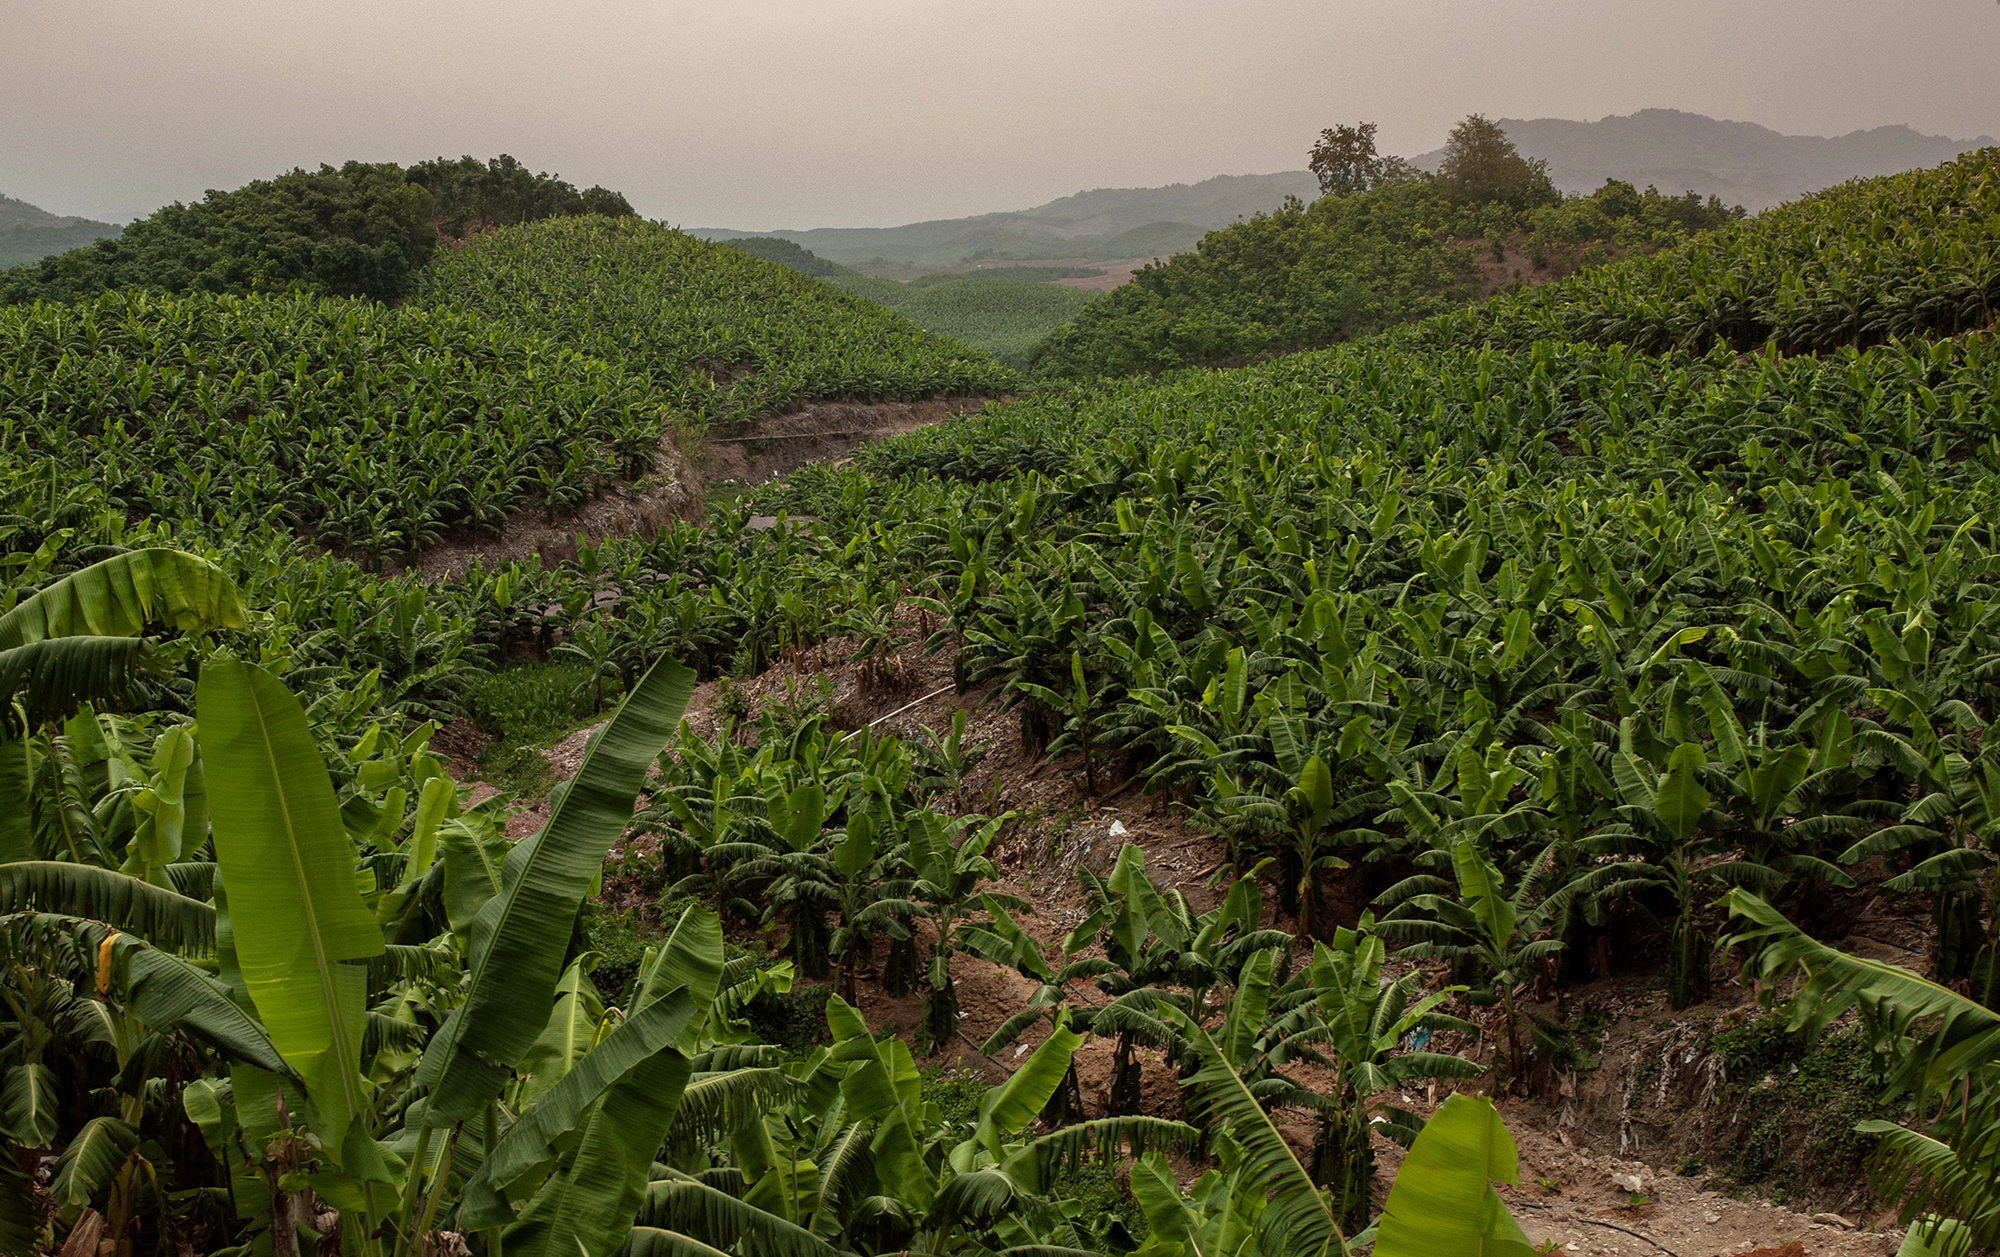 The Bokeo banana plantations are mostly located in the hilly area where the local people used to grow rice and collect wild foods (Image: Visarut Sankham/China Dialogue)